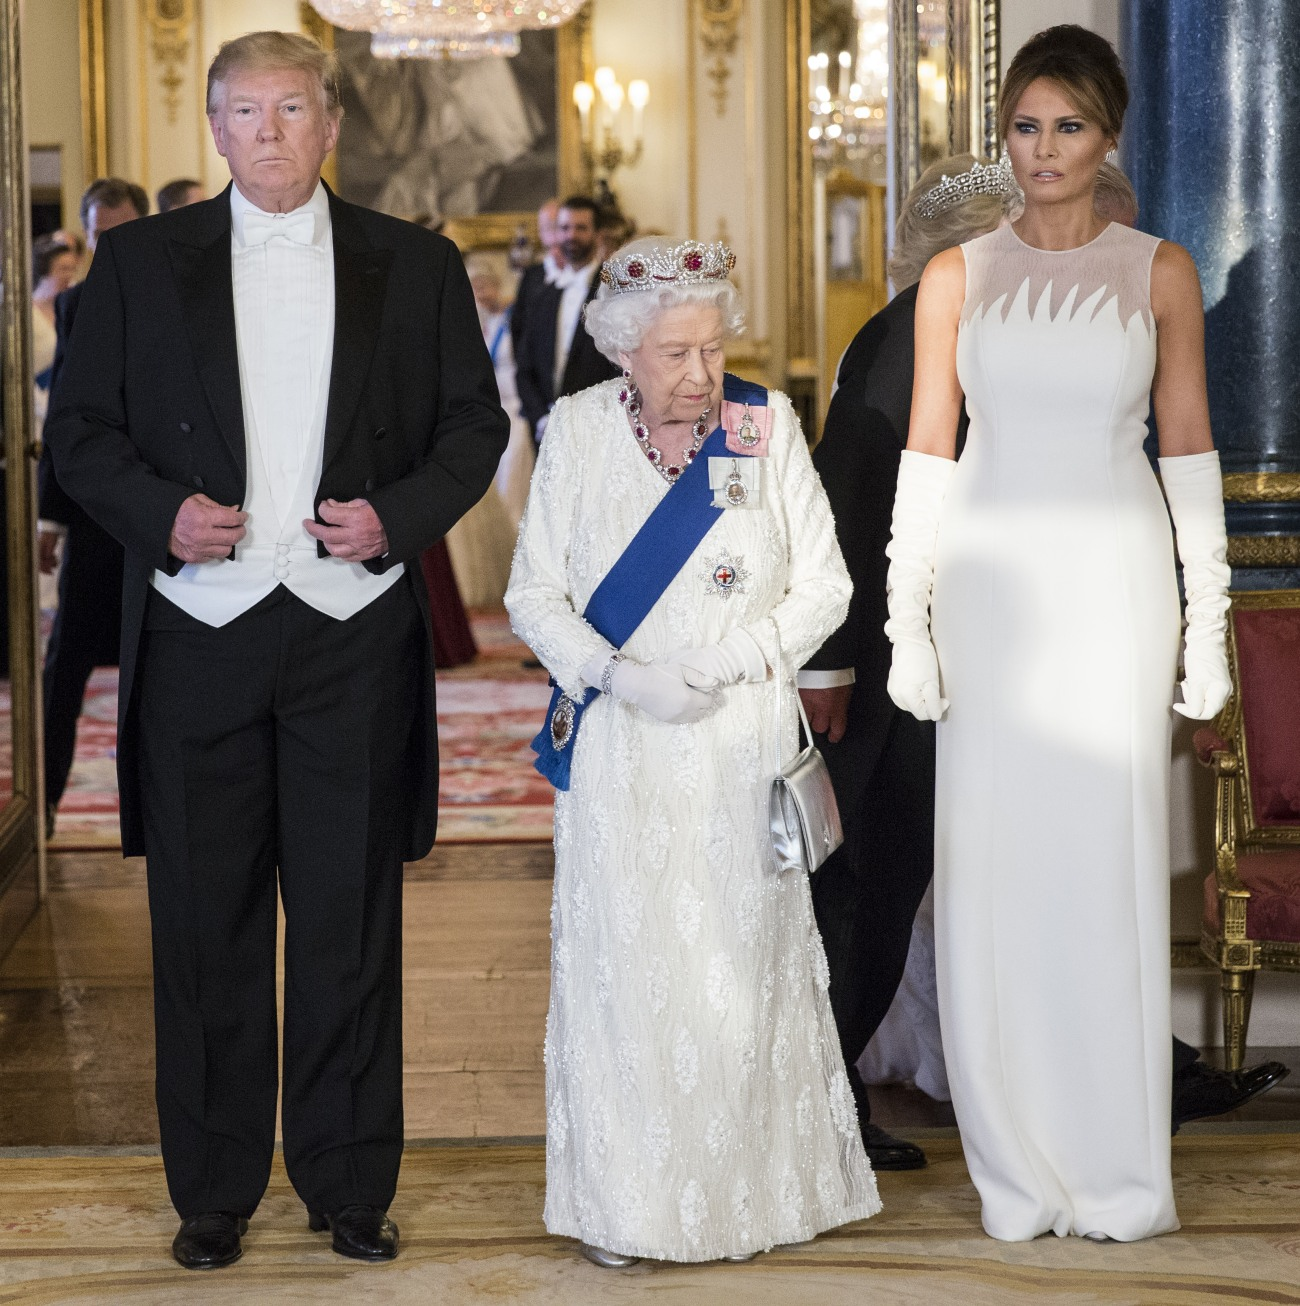 ROYAL ROTA Her Majesty The Queen and President of The United States of America at State Banquet, Buckingham Palace, London, England, UK